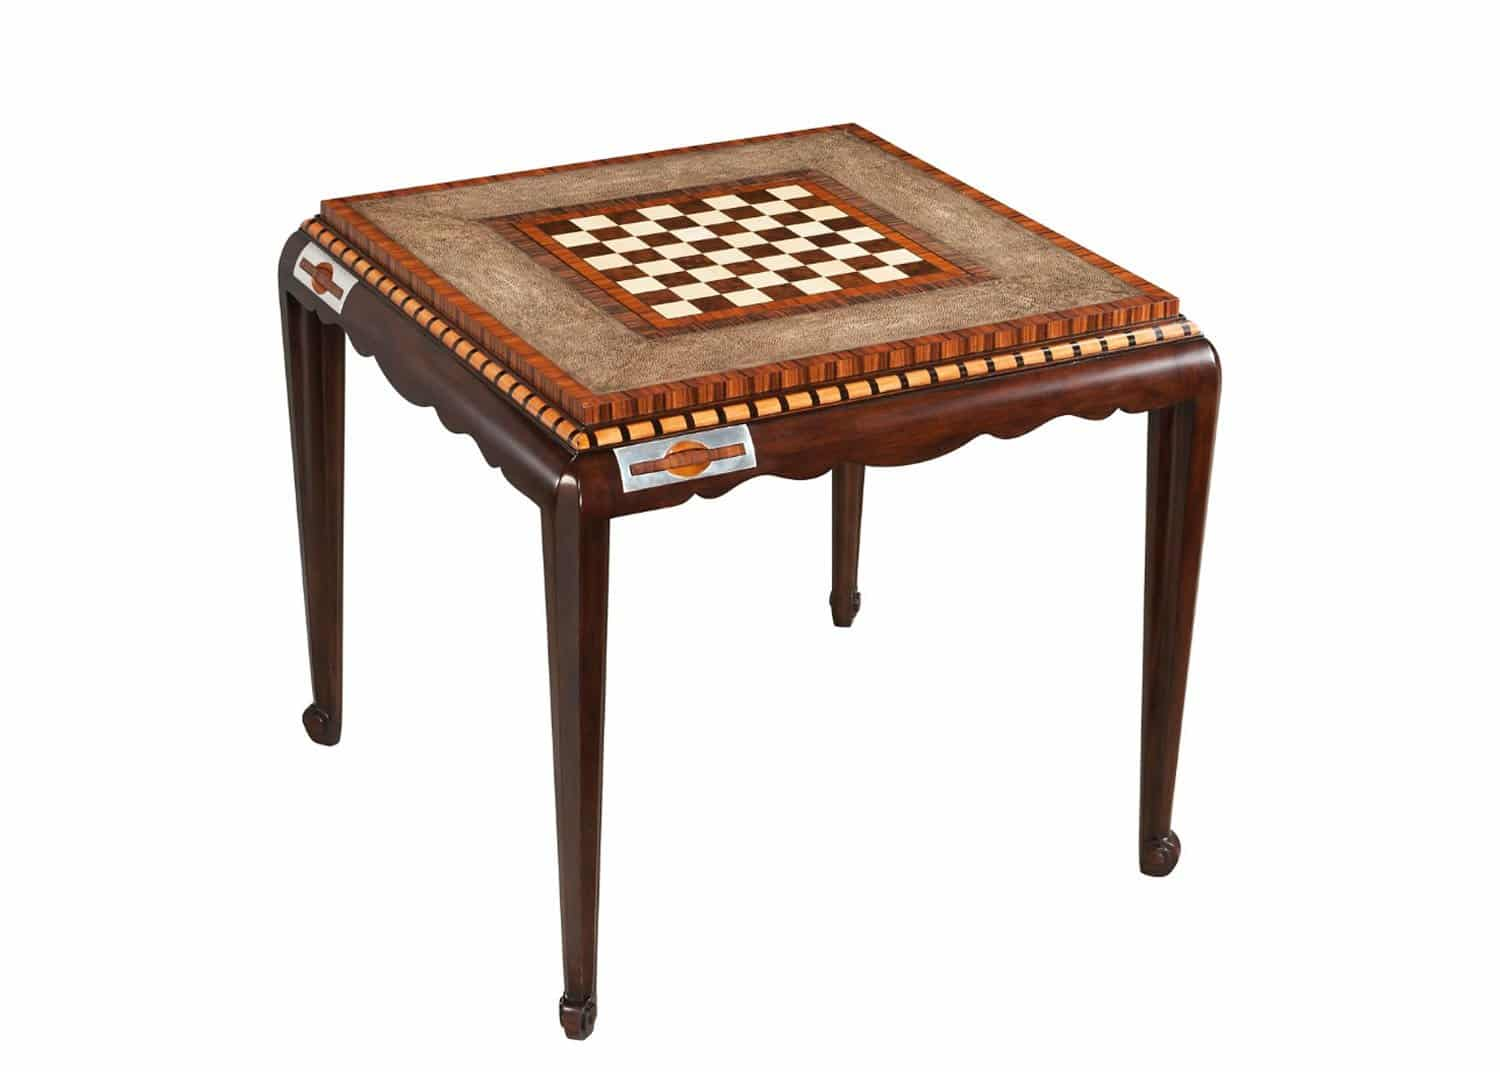 Ashley games table mobilart decor high end furniture for Ashley meuble st jerome